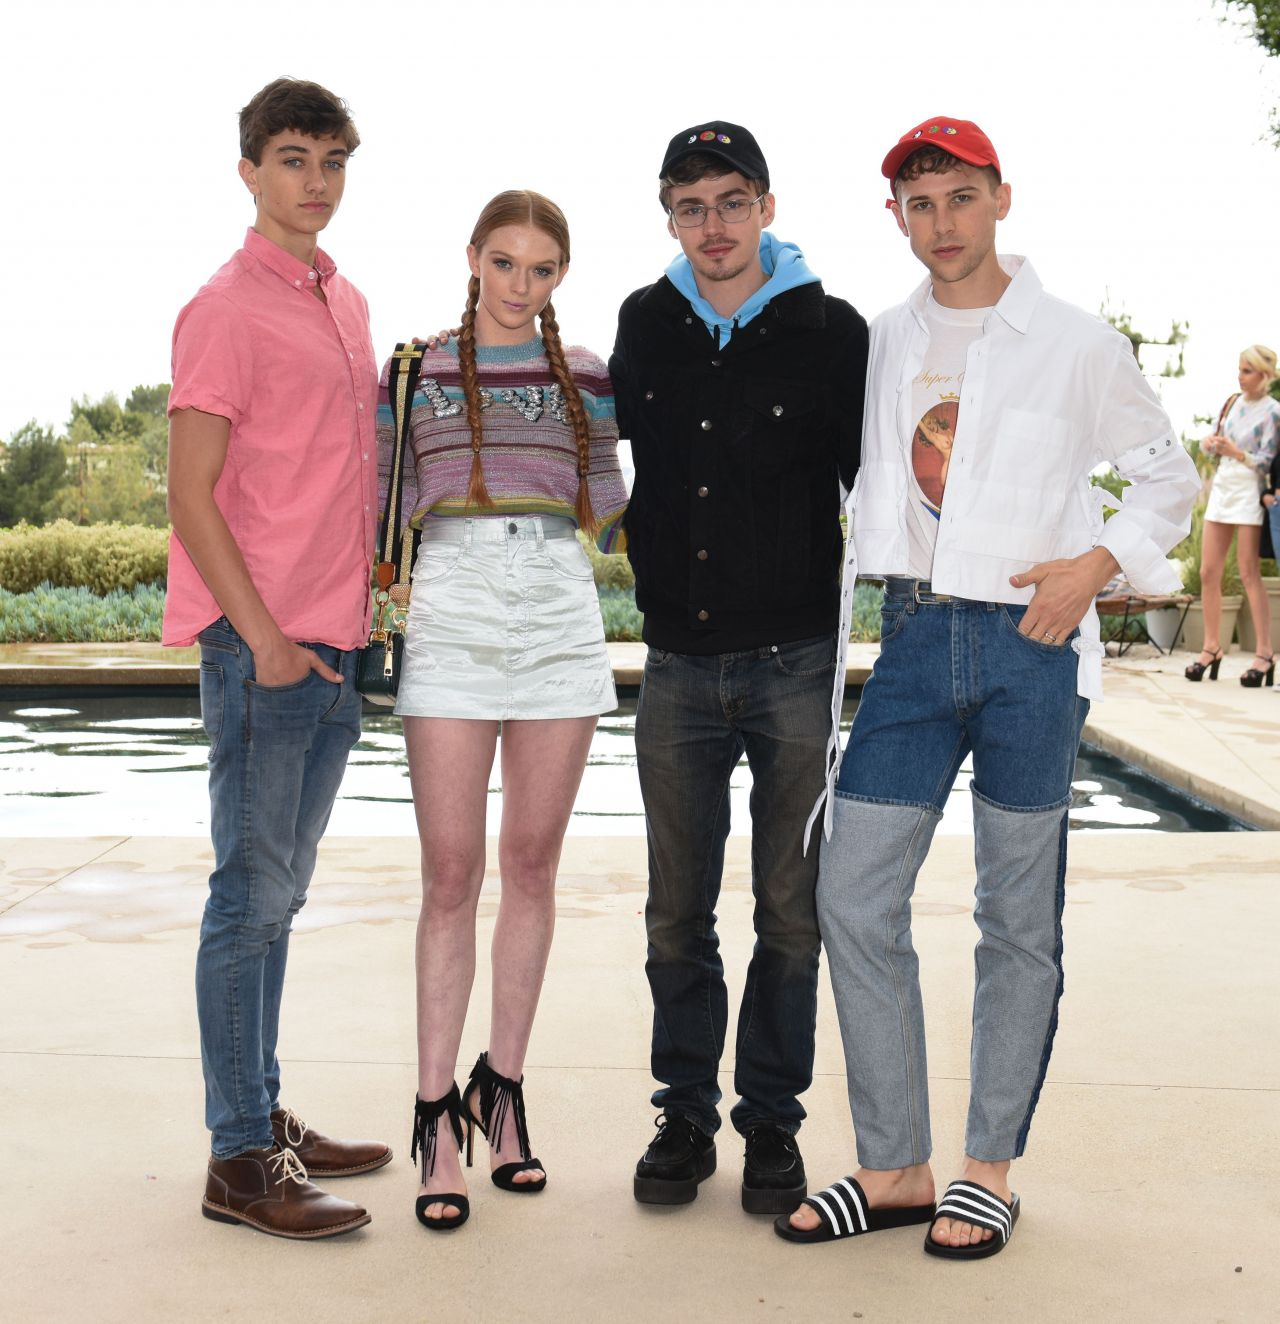 pictures Larsen thompson marc jacobs celebrates daisy in los angeles